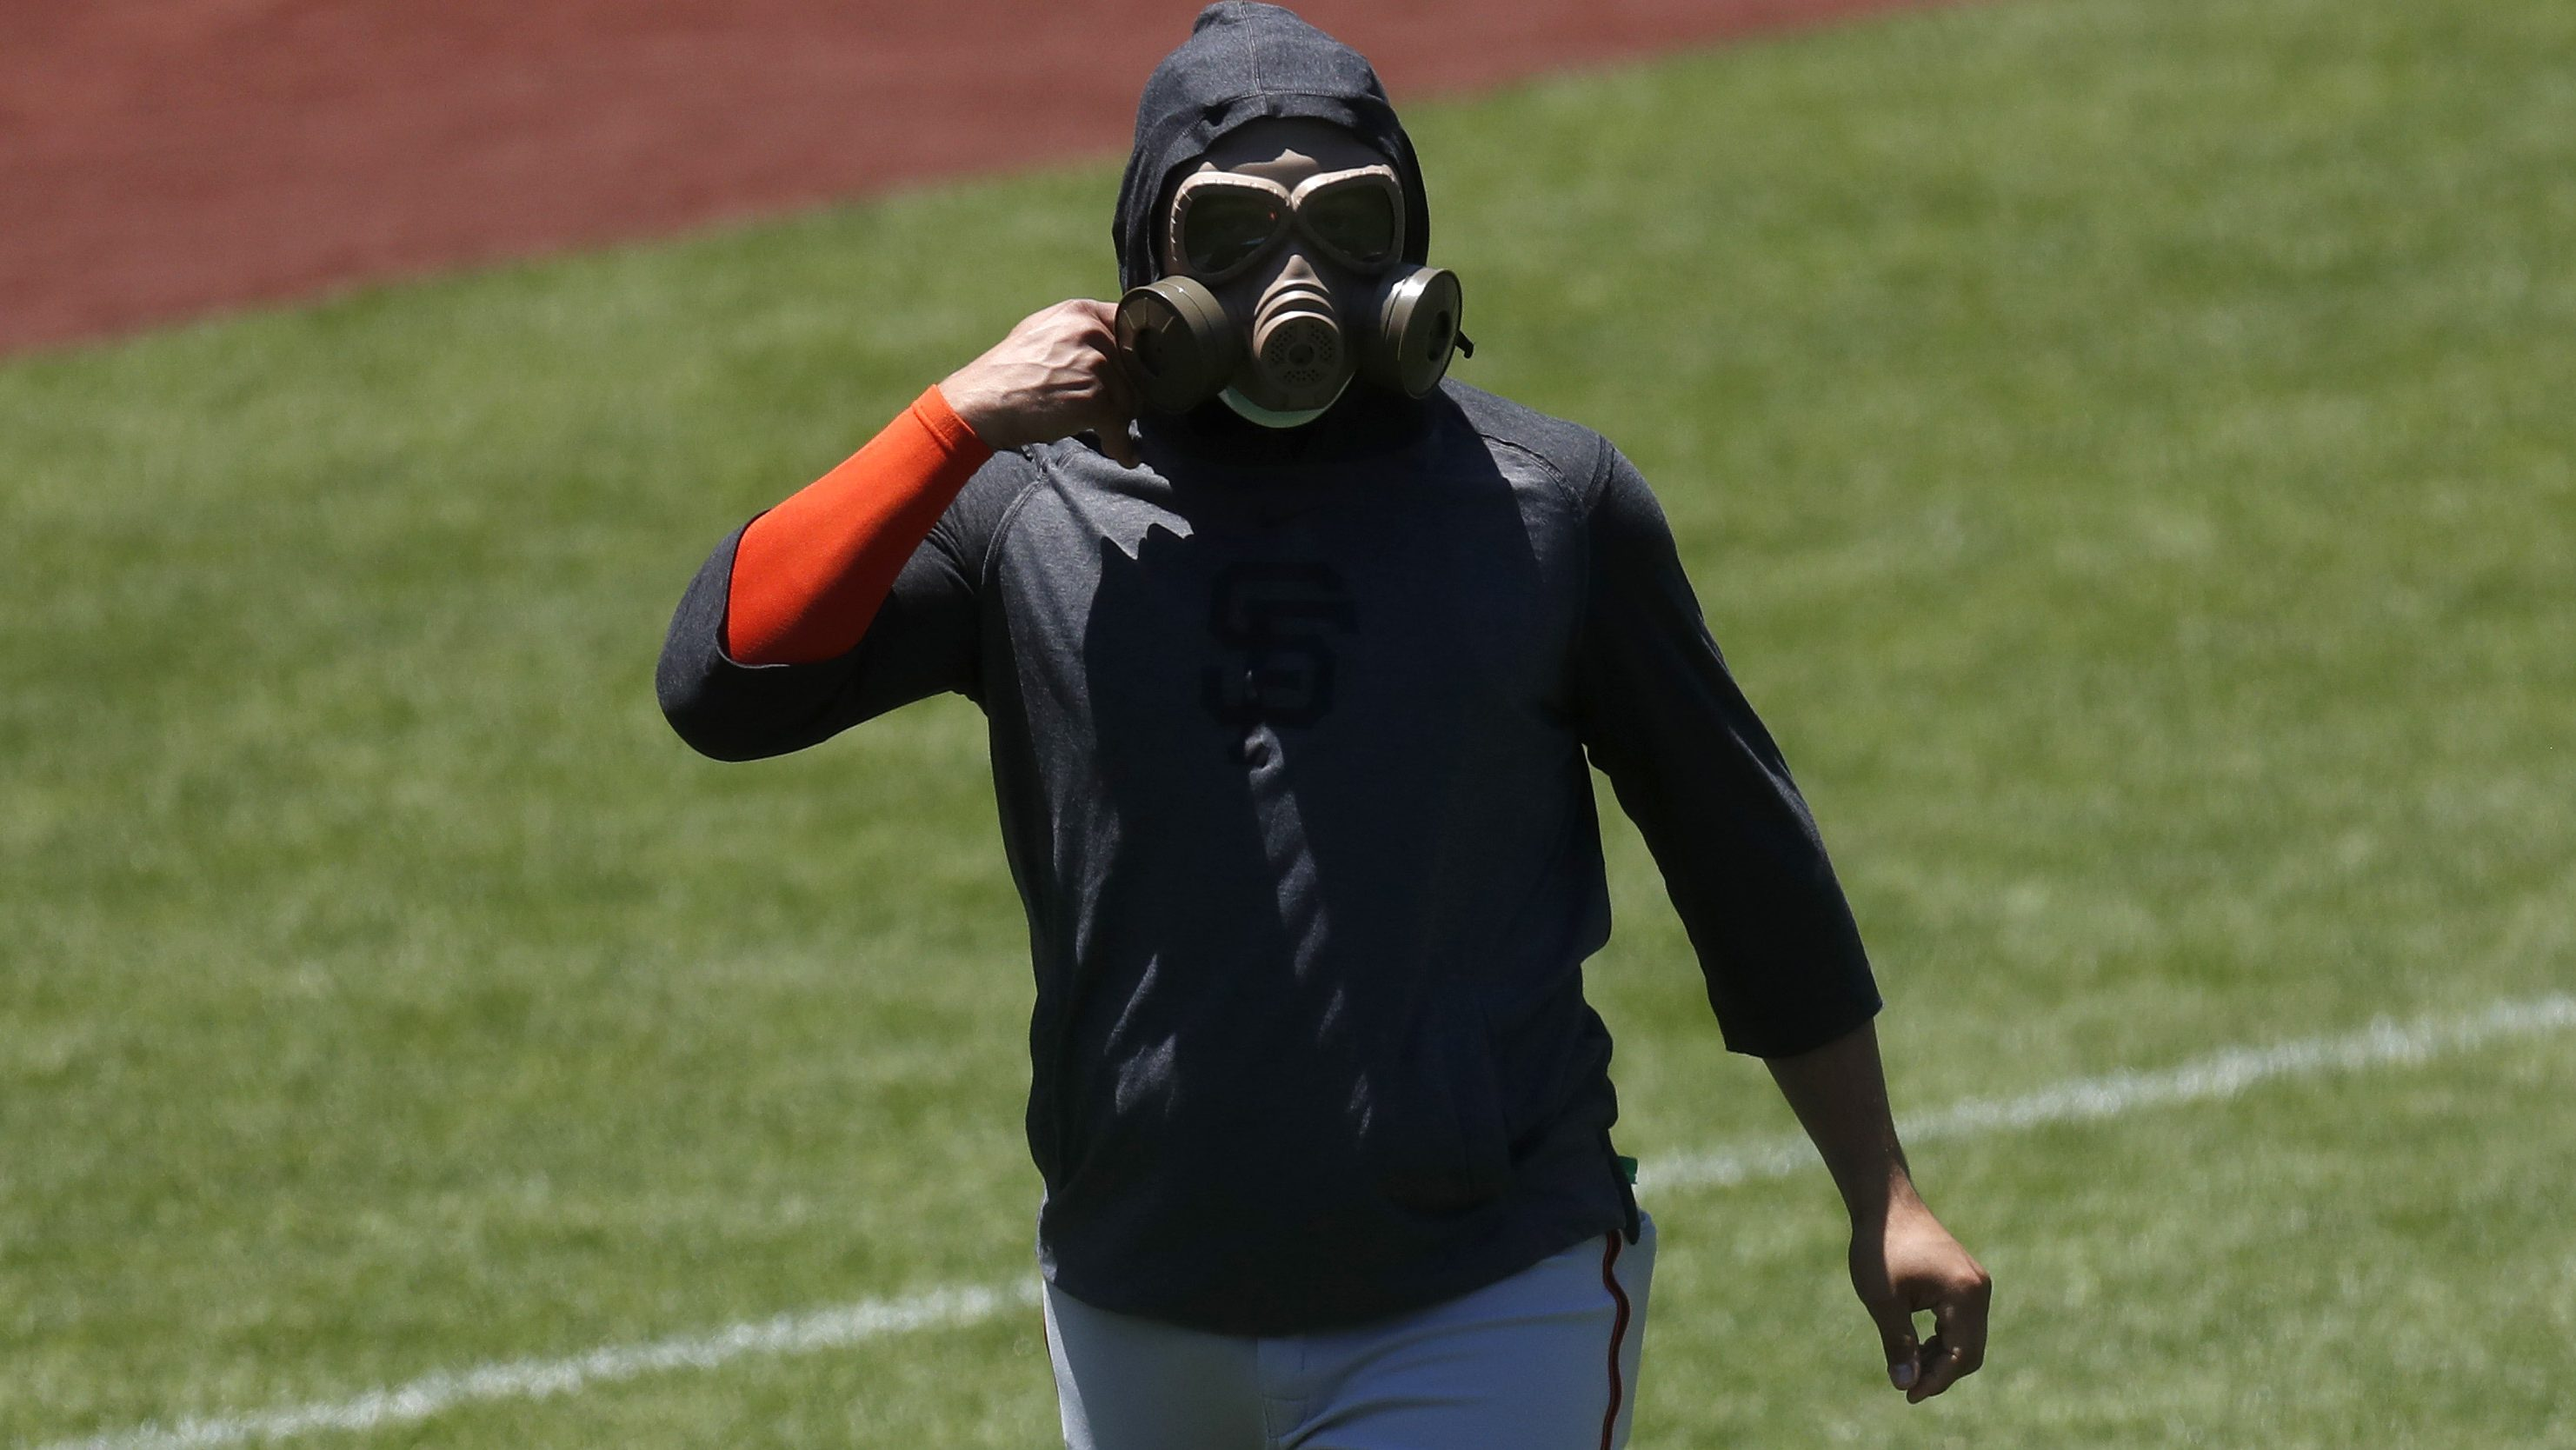 First-year Giants coaching staff overhauls Oracle Park, team workouts for strange season buildup